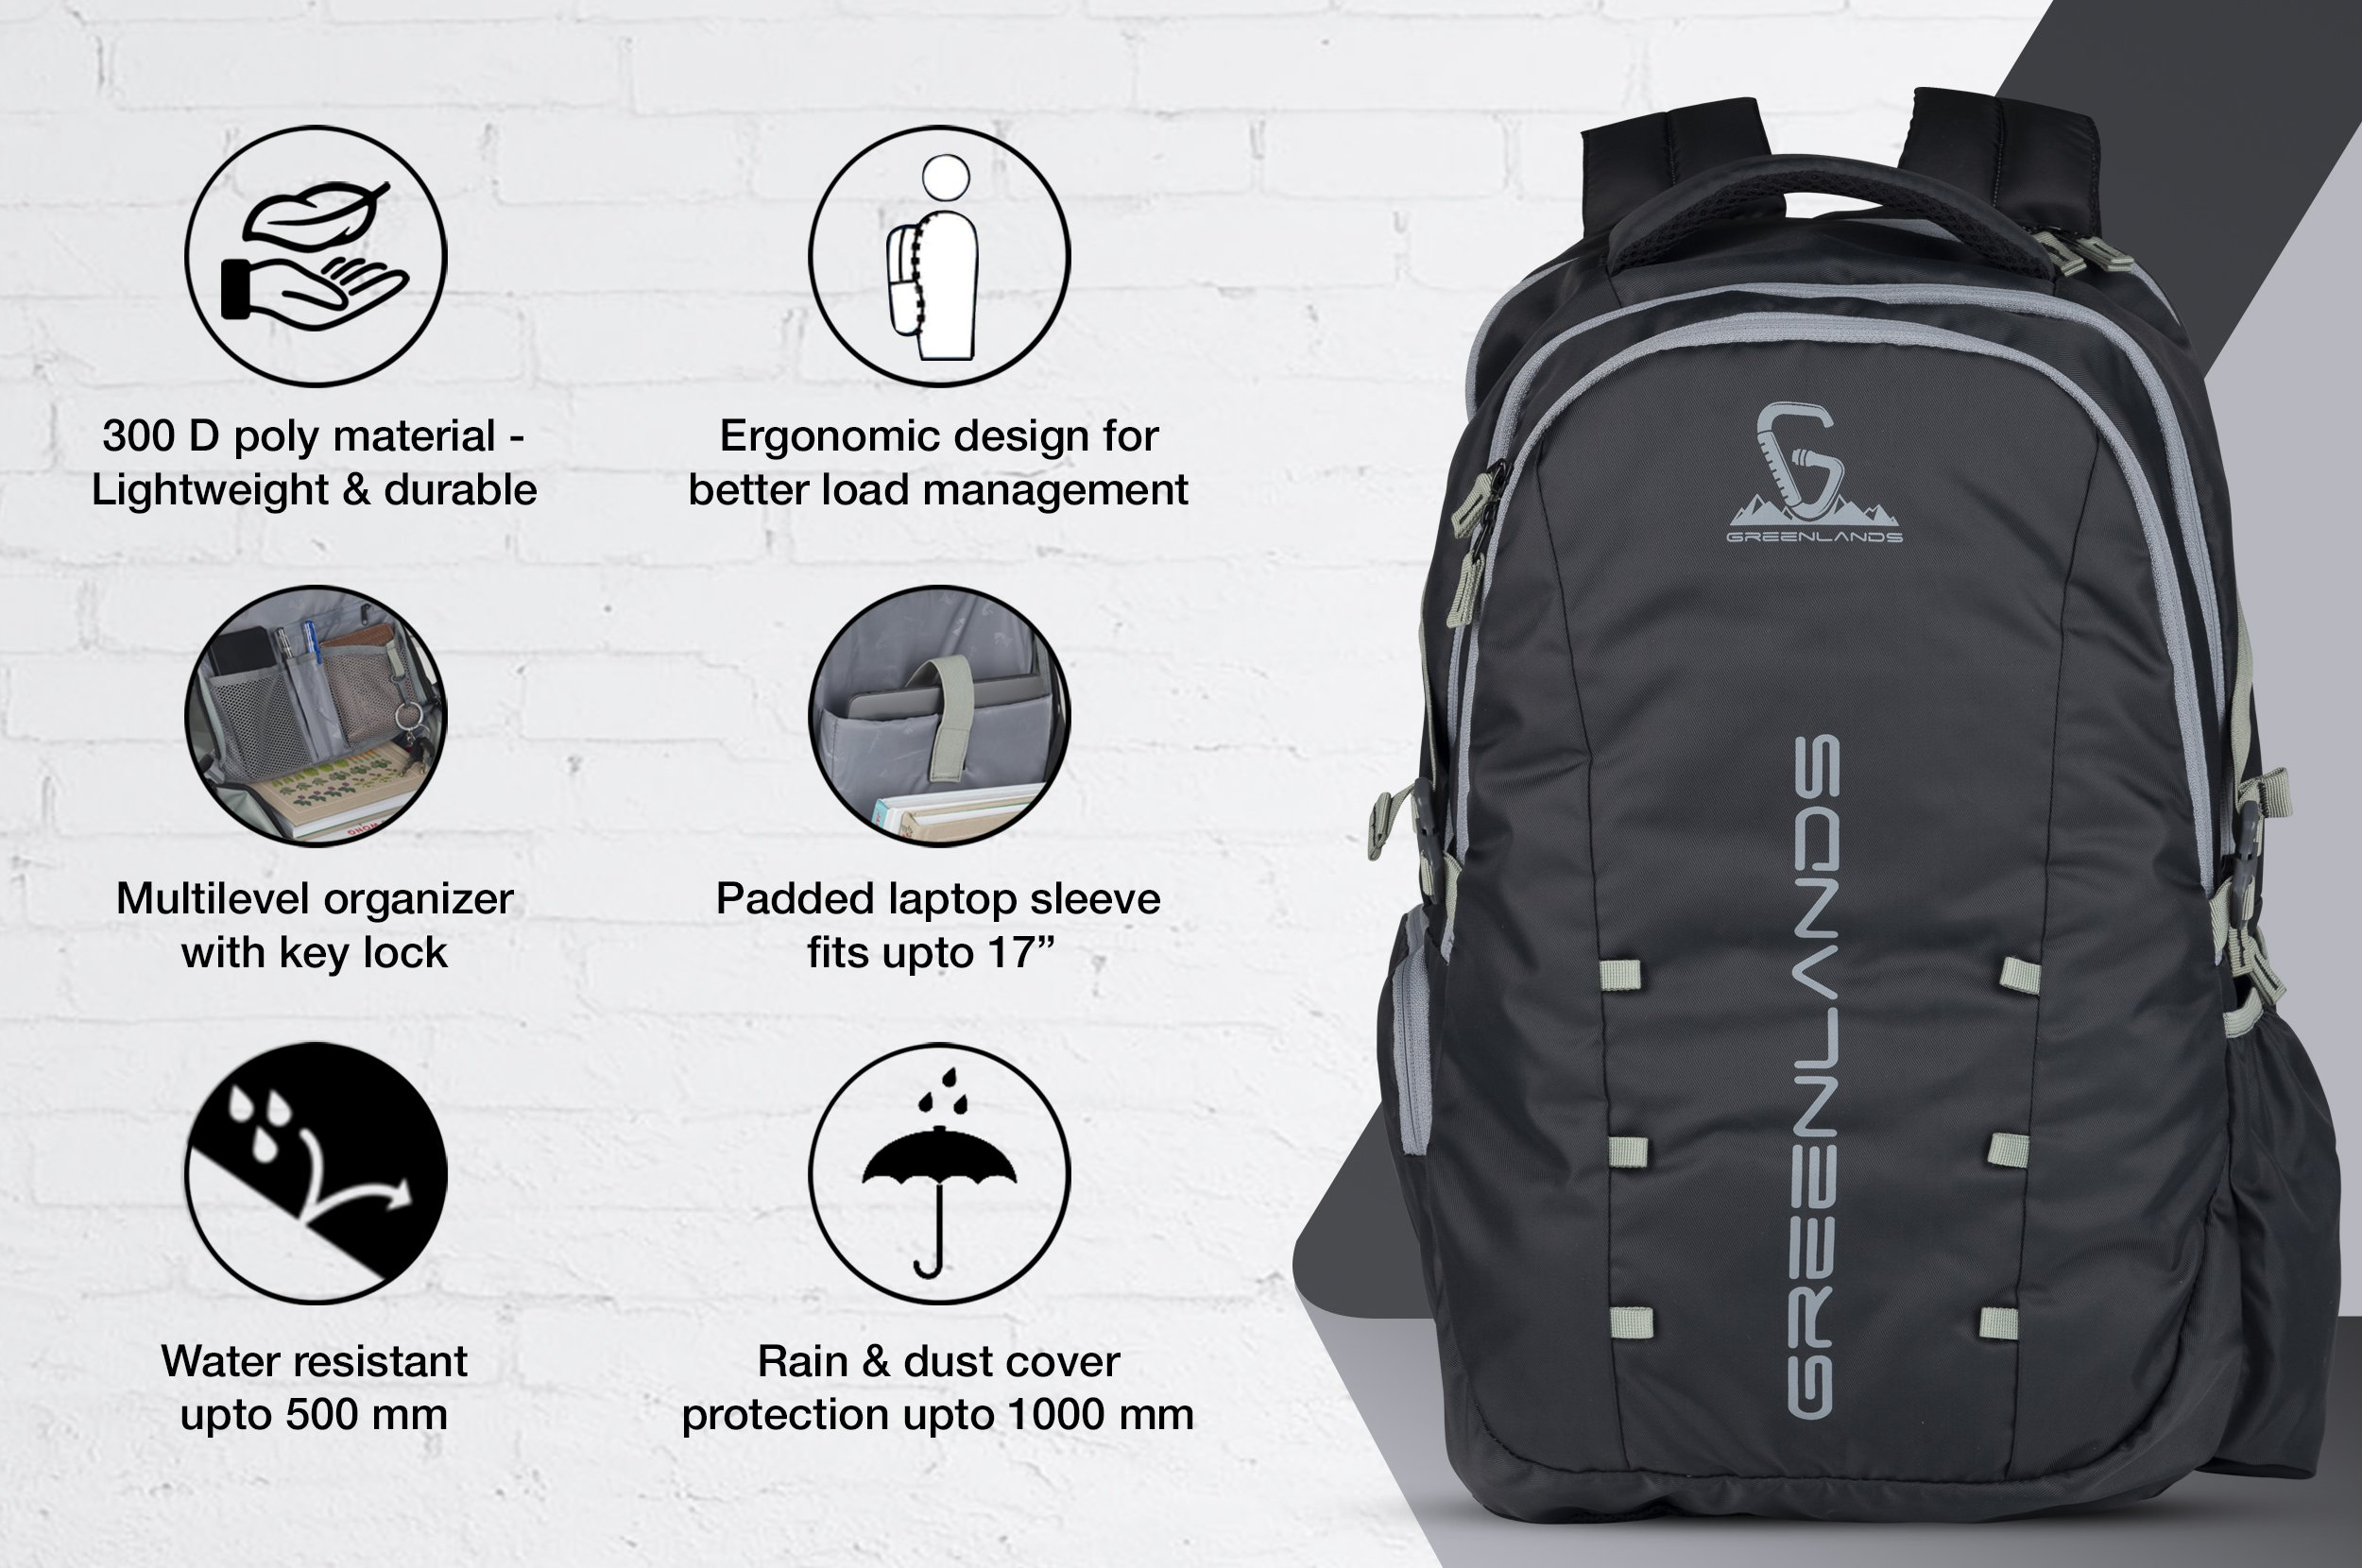 Lightweignt Quad Bag